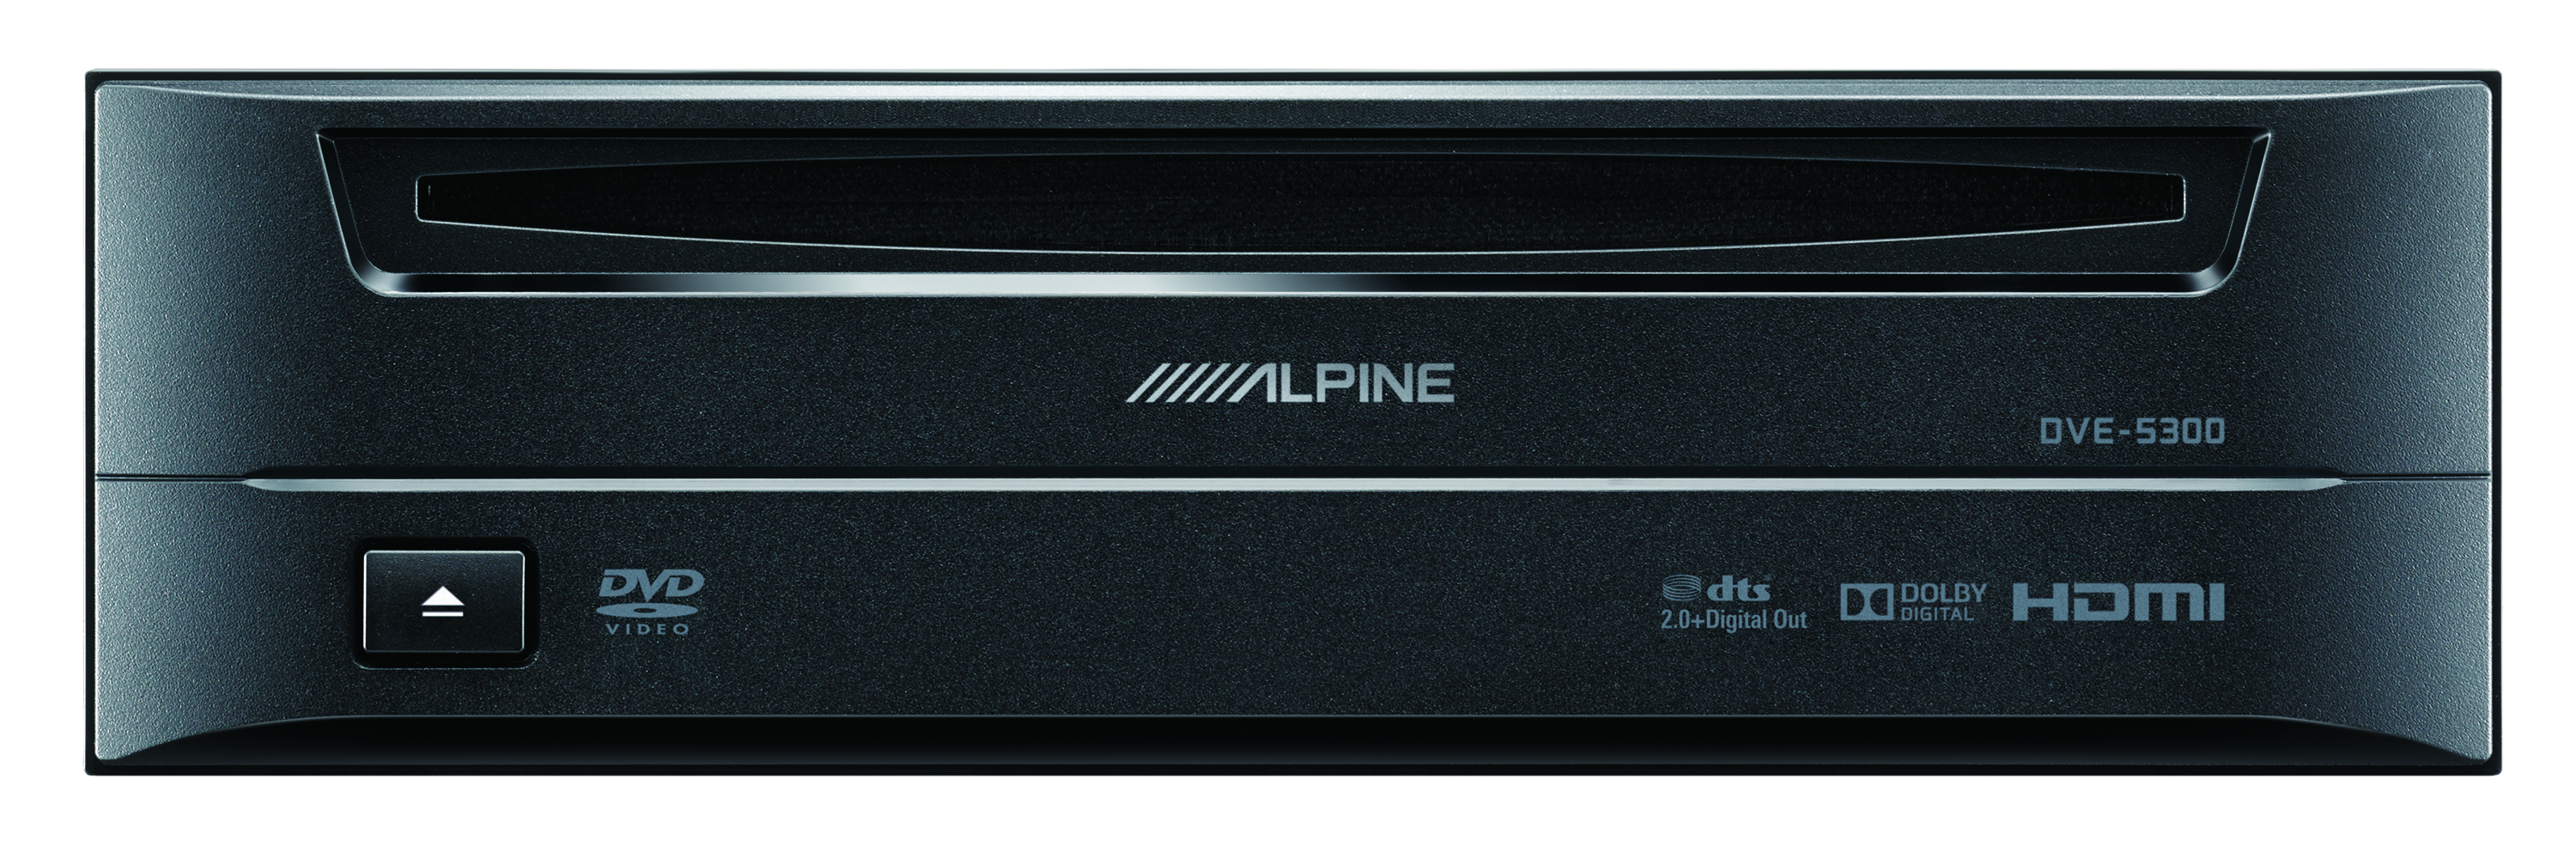 Alpine I207 Wra Parts Jeep Audio Electronics Accessories See All Sony Products Still Have Cds Dvd